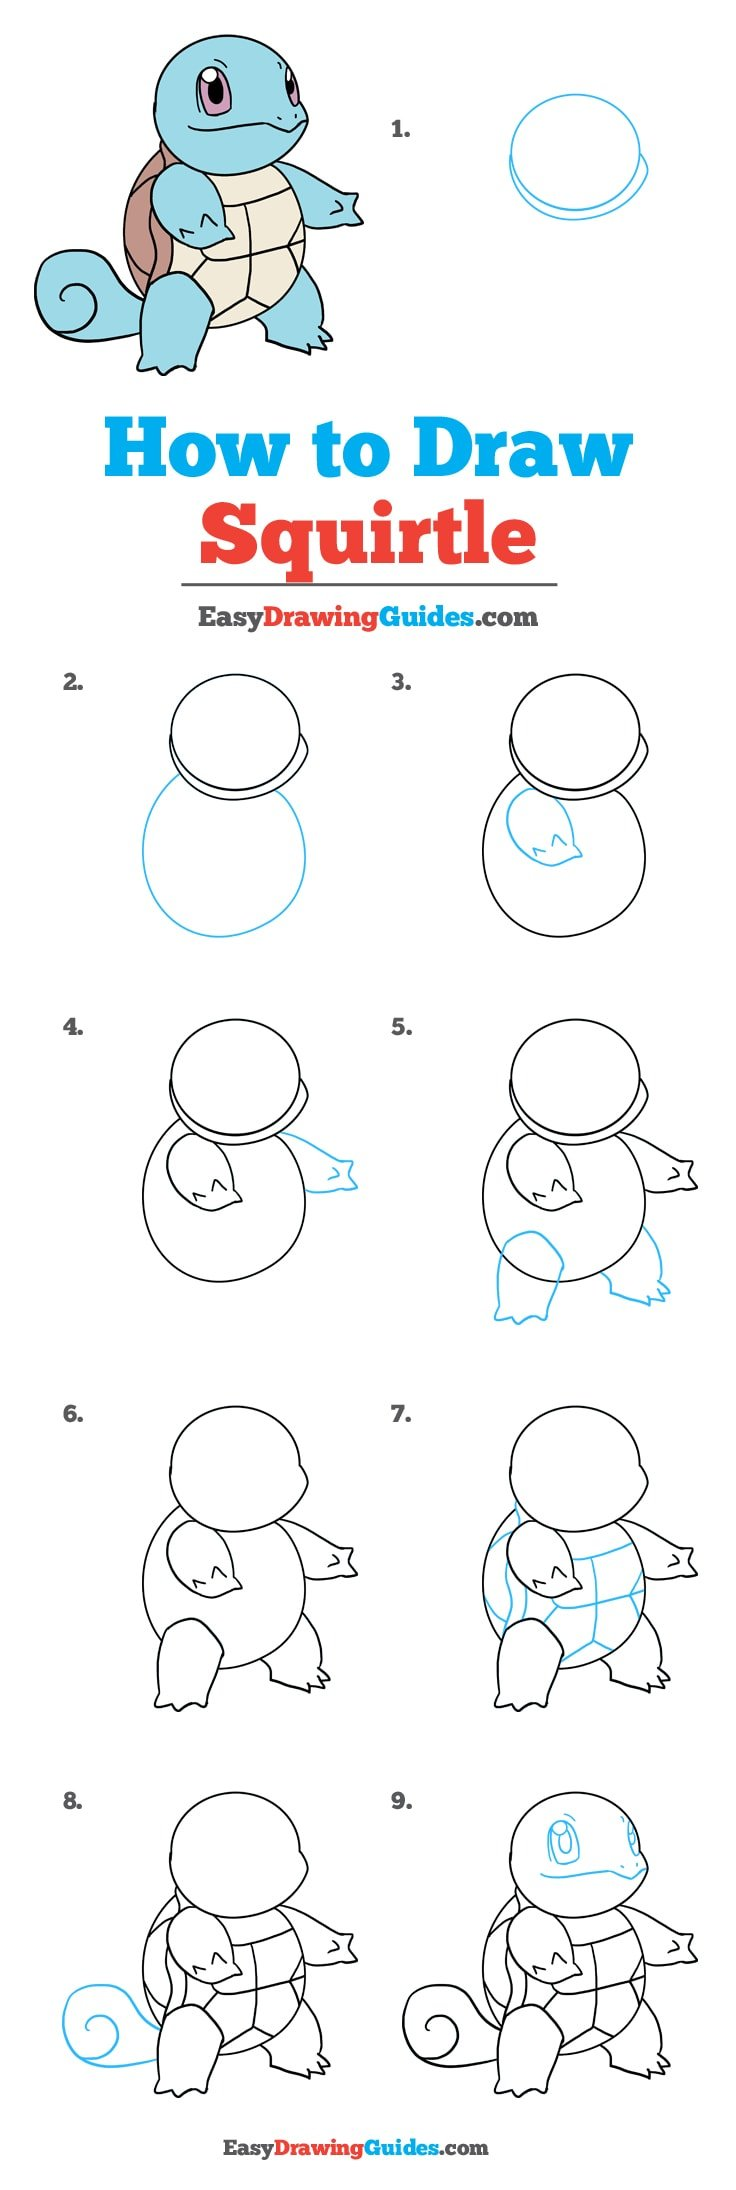 How to Draw Squirtle Pokémon - Really Easy Drawing Tutorial